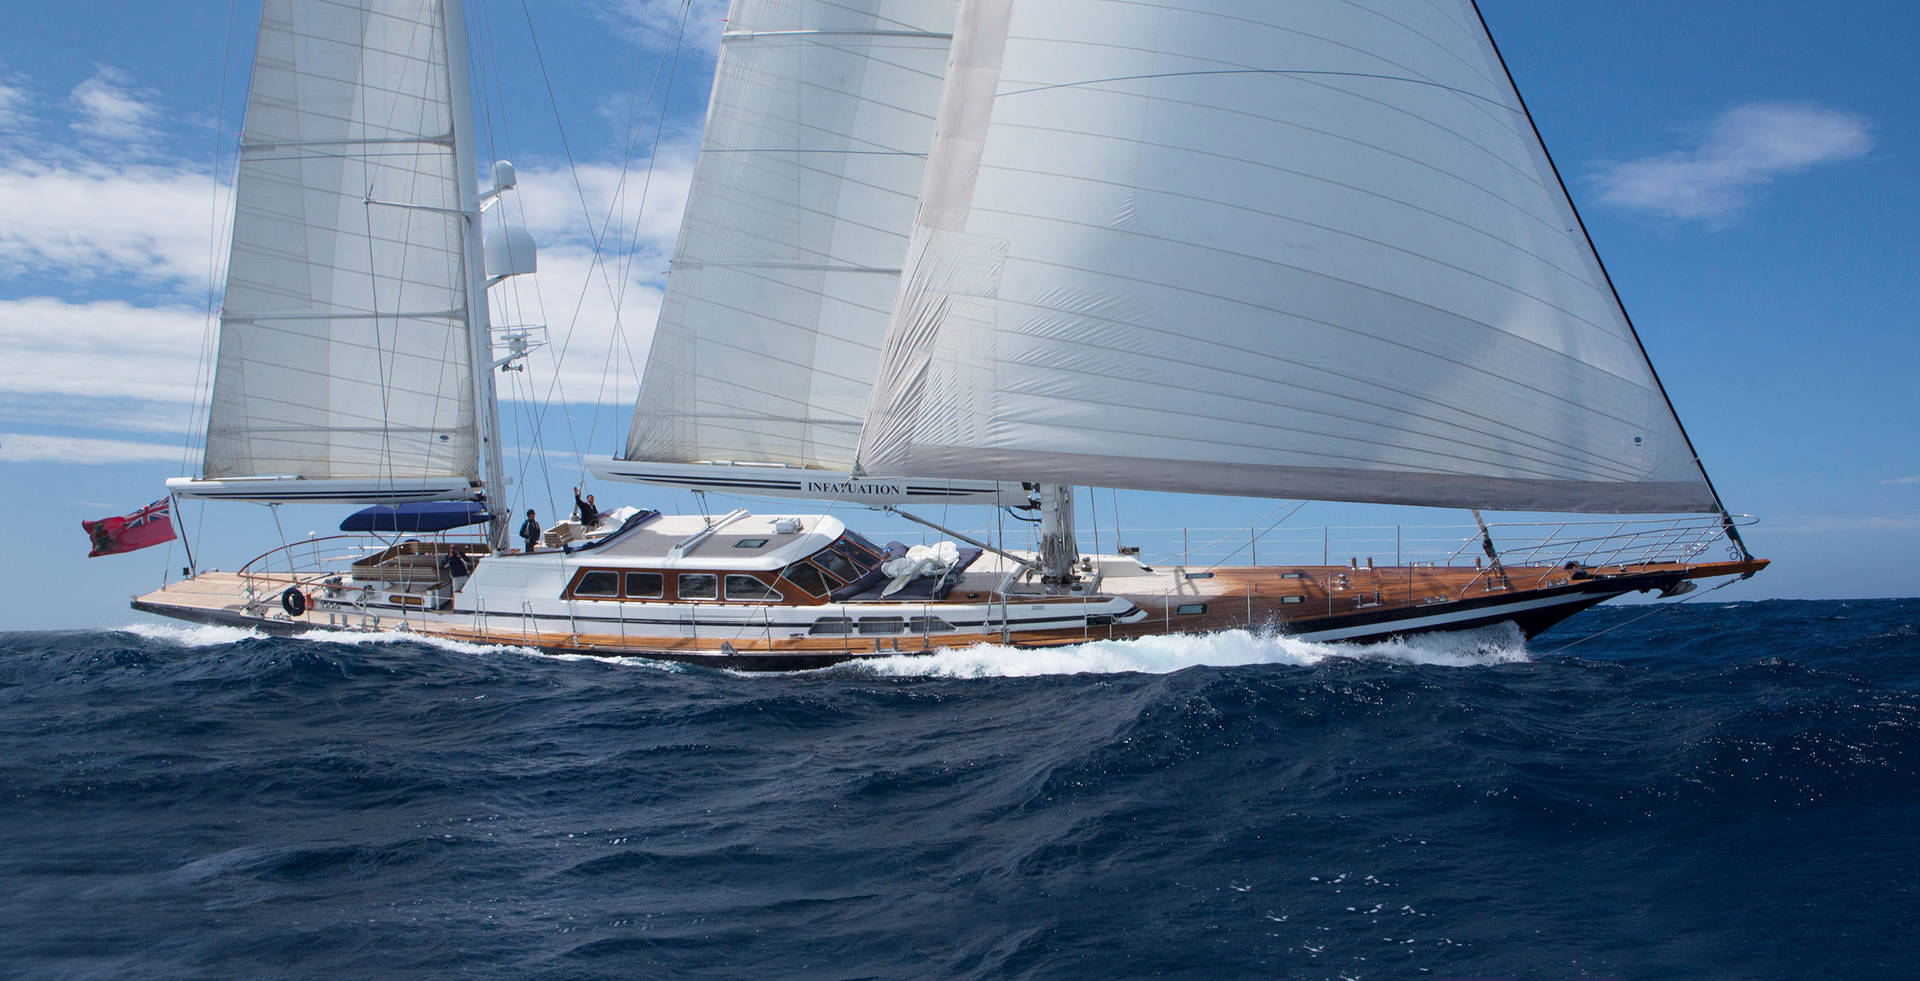 Photos of sailing yachts The best photos of Sailing Yacht A Boat International